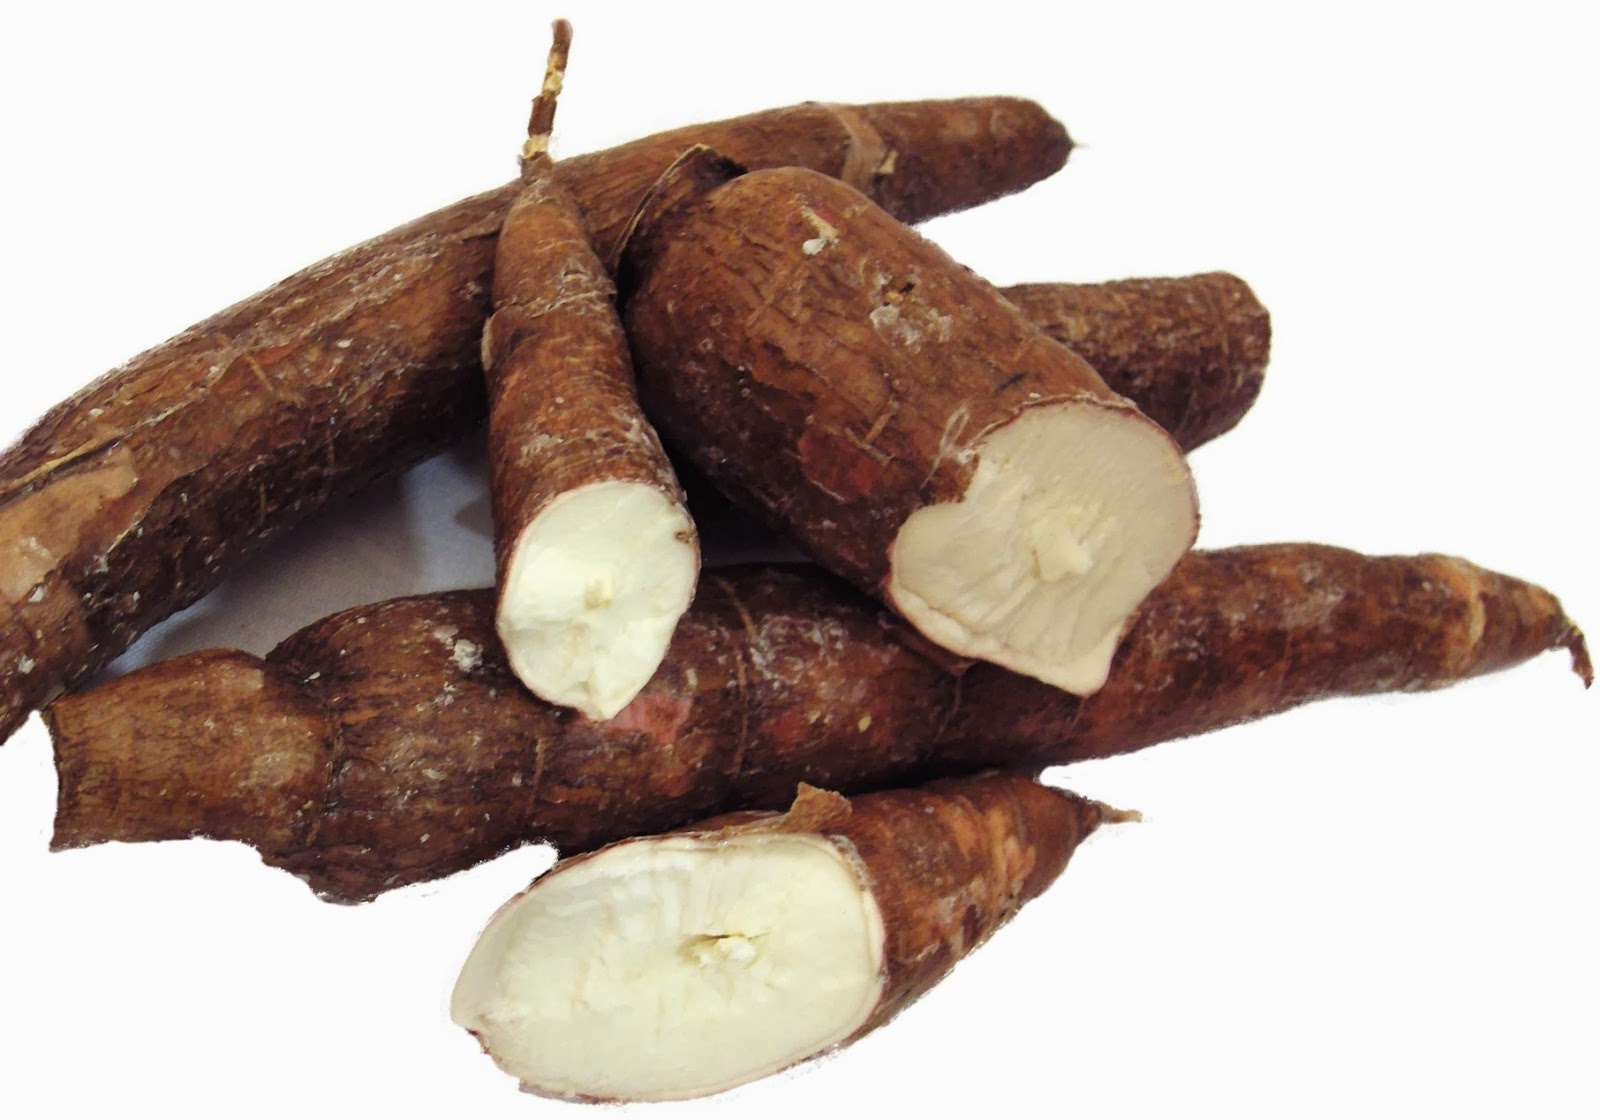 Permalink to nutrient content and benefits of cassava